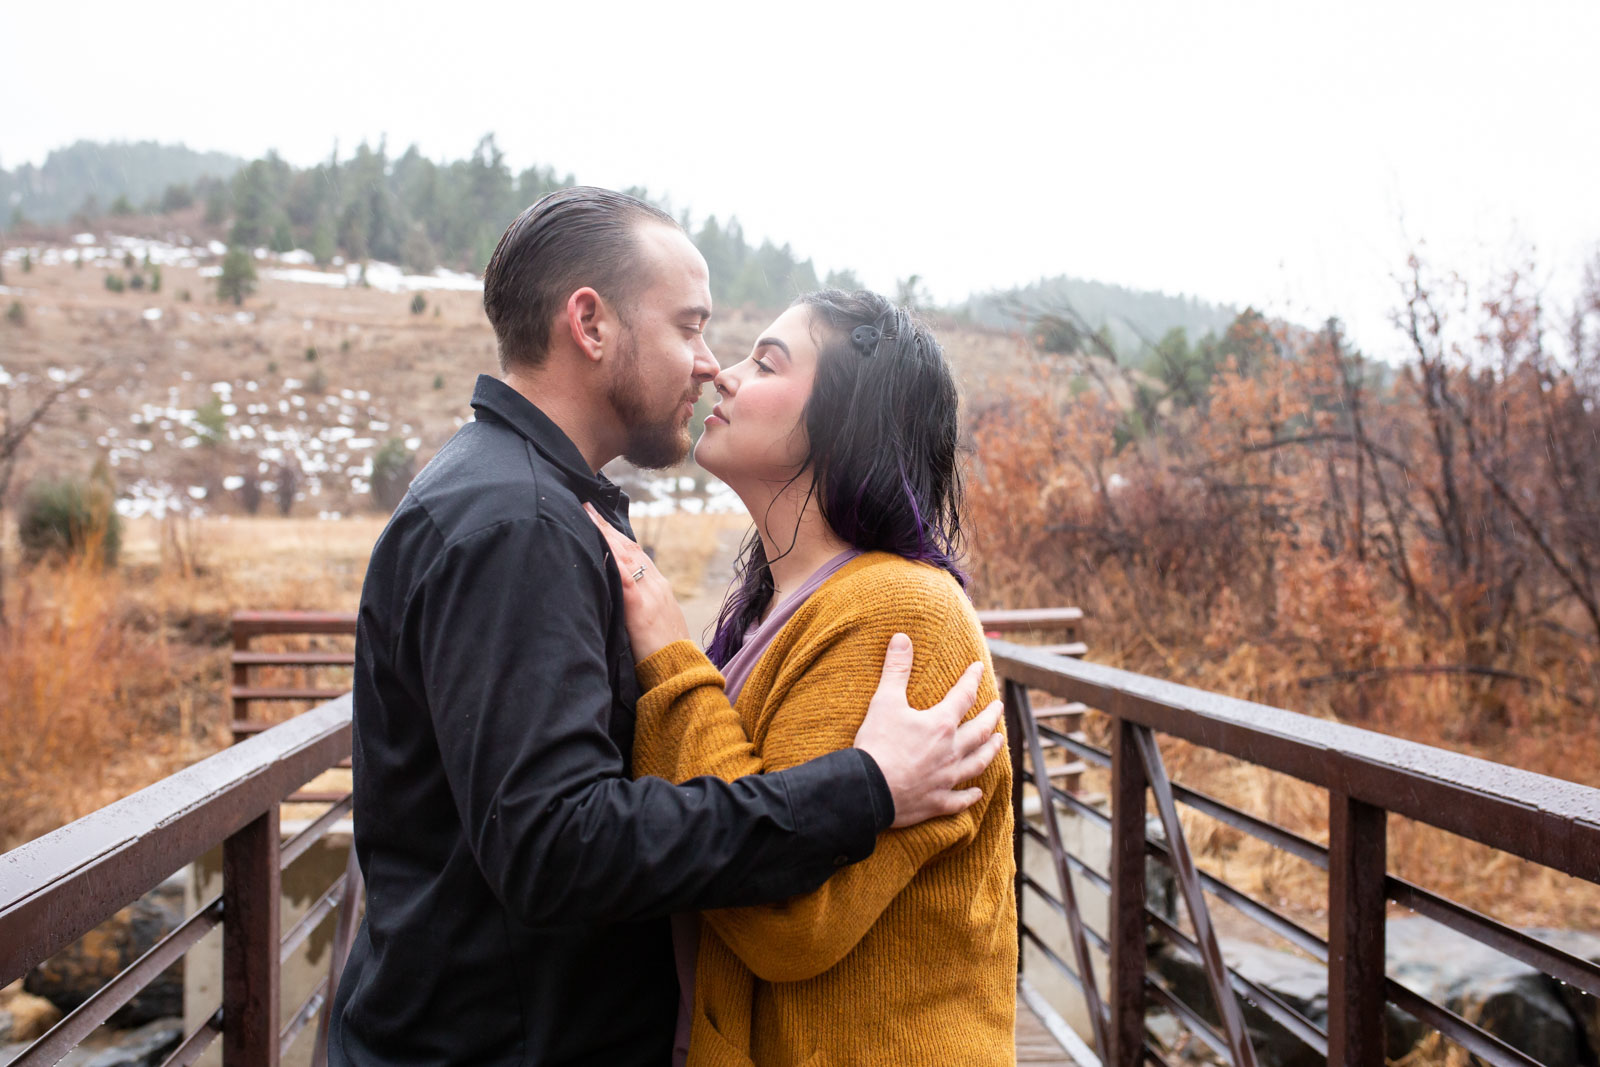 Rainy fall engagement photography  -the bridge at Lair O the Bear Park, Colorado